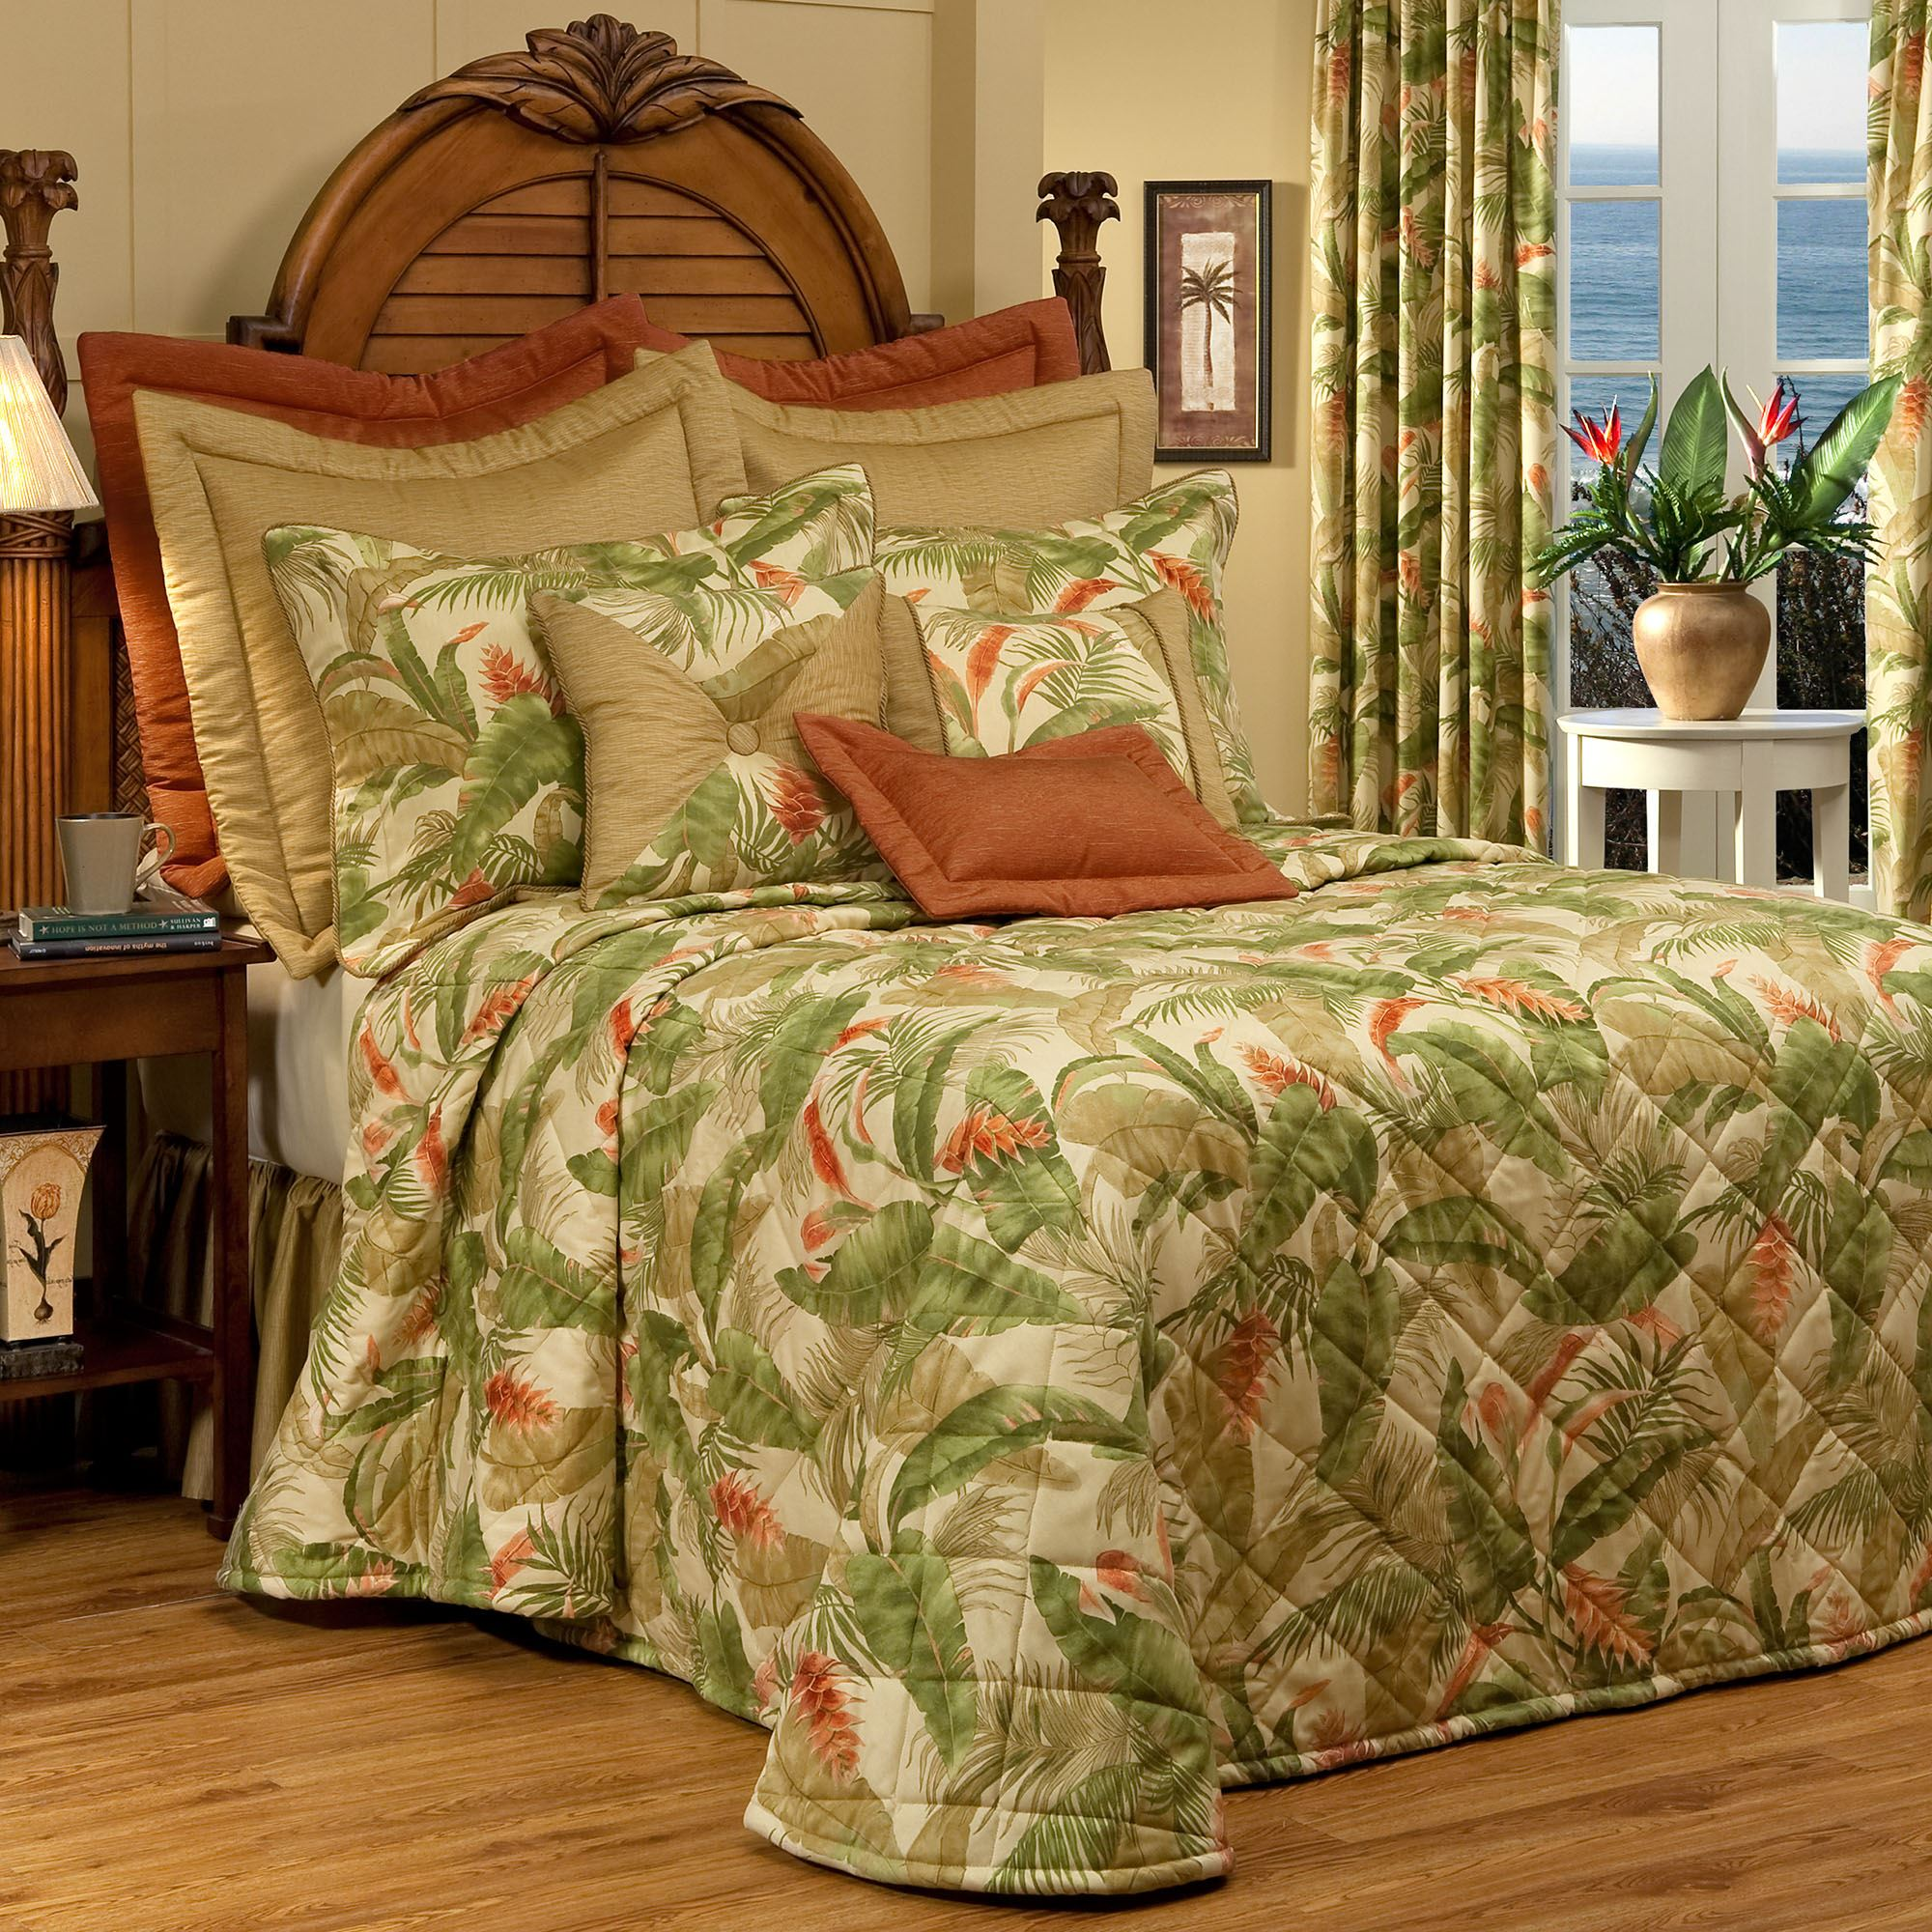 La Selva Ii Light Gold Quilted Tropical Bedspread Bedding